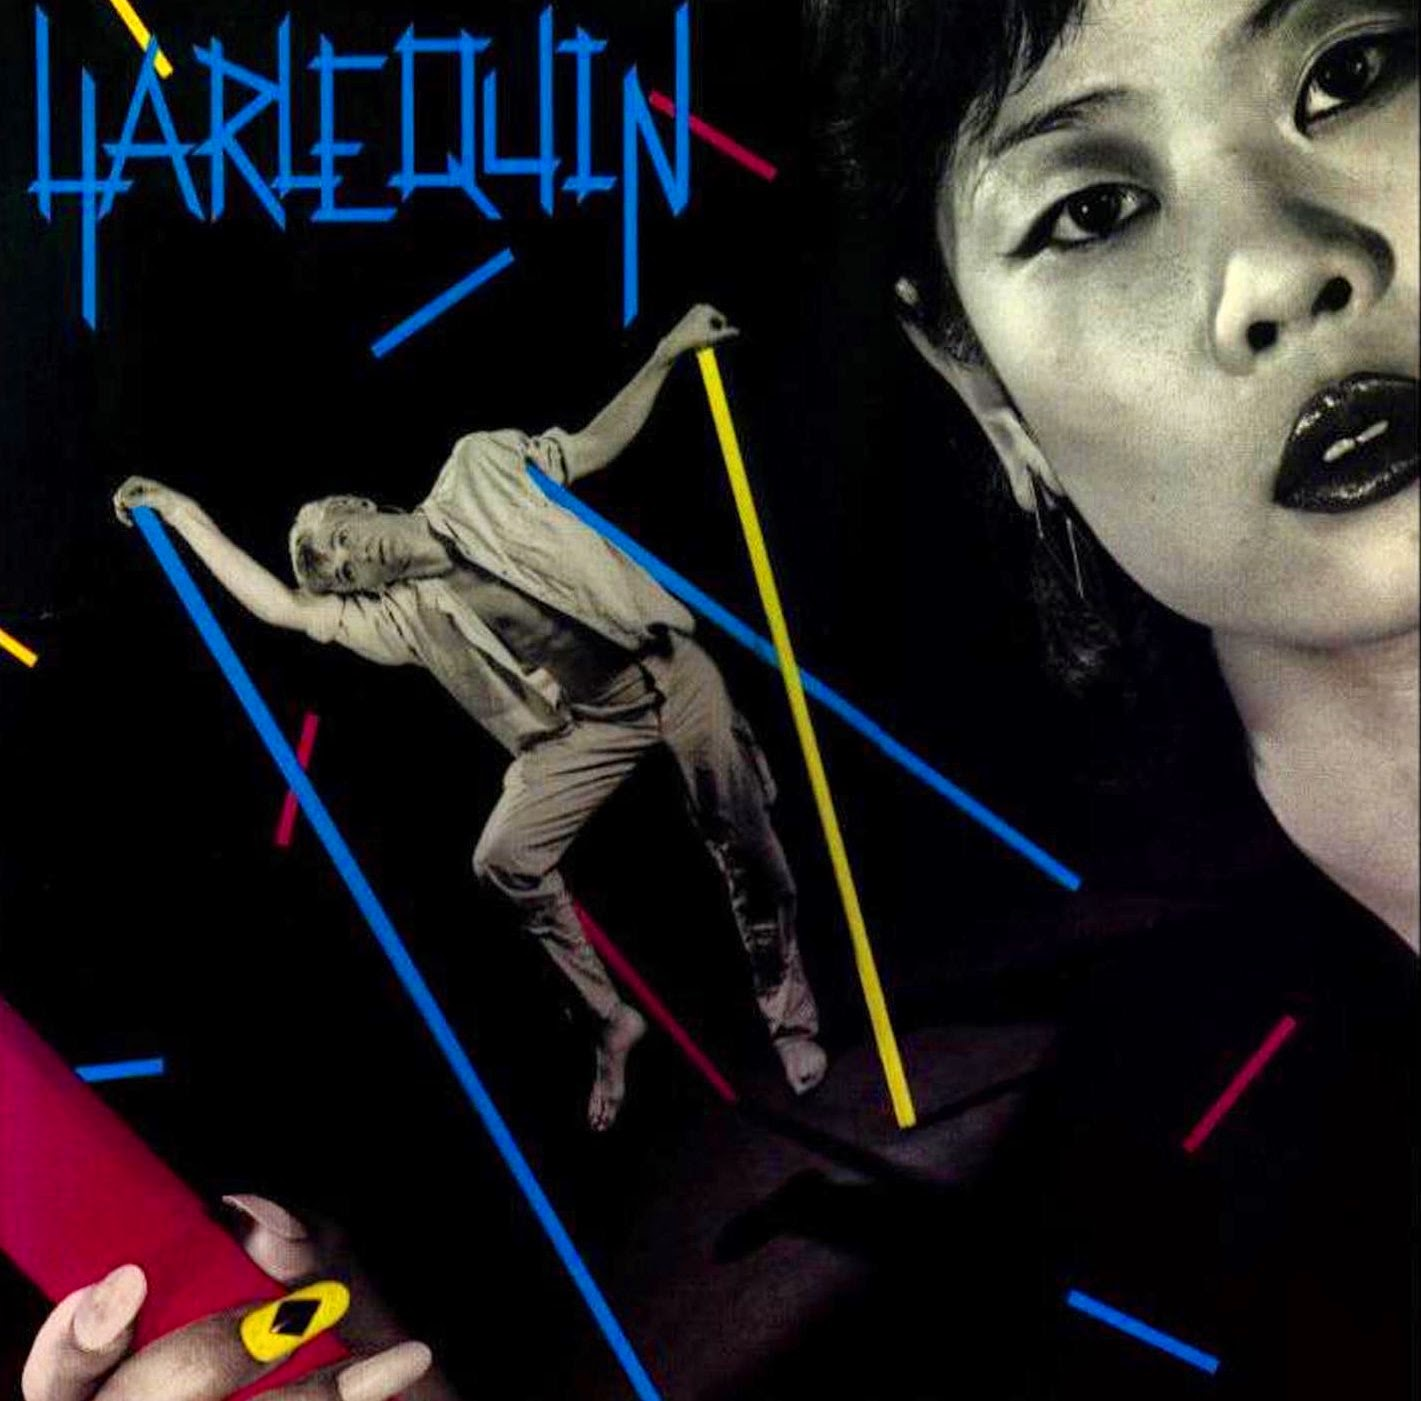 Harlequin st 1984 aor melodic rock